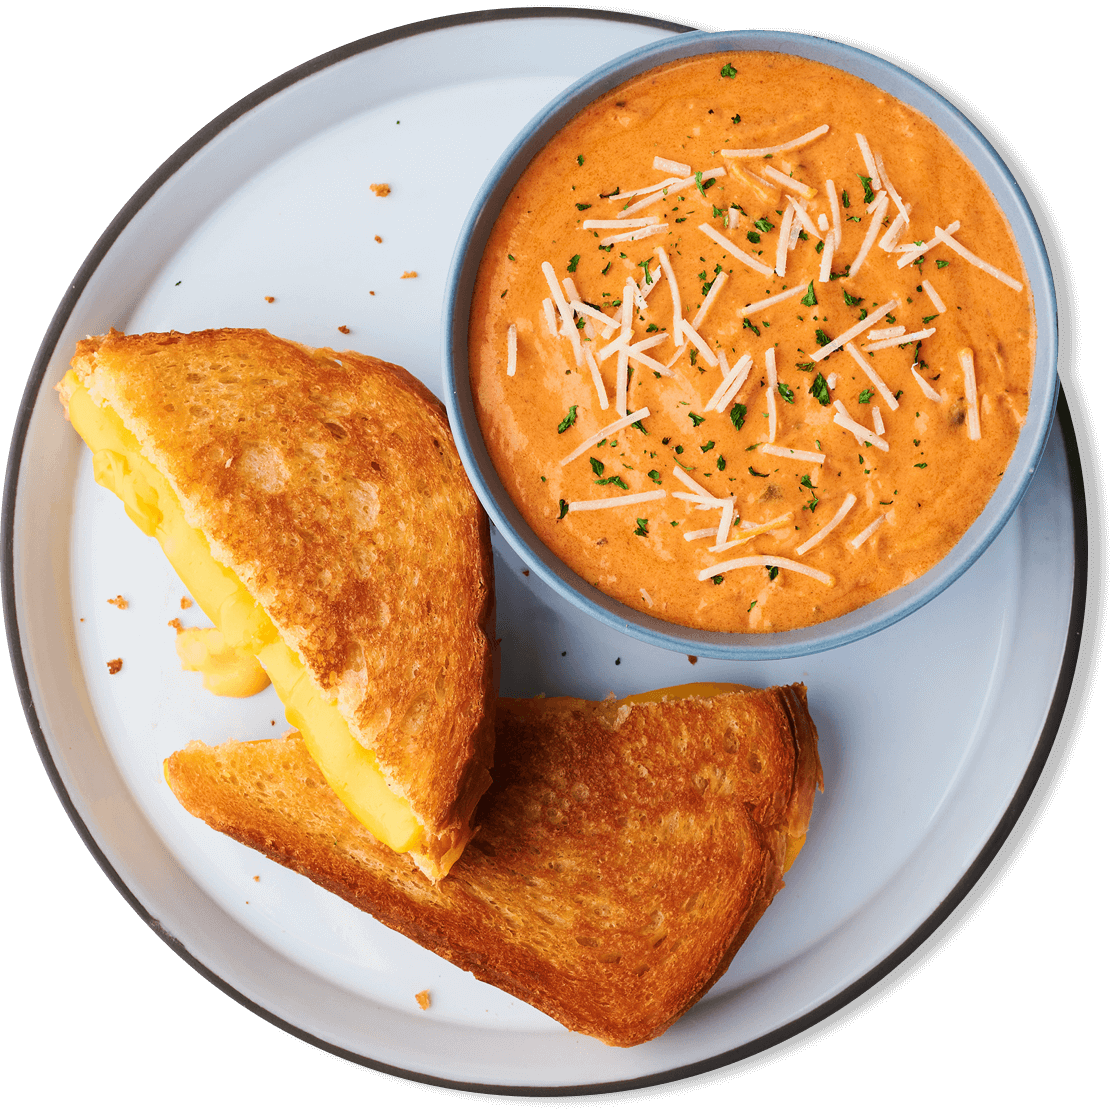 The Usual served with a cup of creamy tomato soup, a chocolate chip cookie & choice of drink